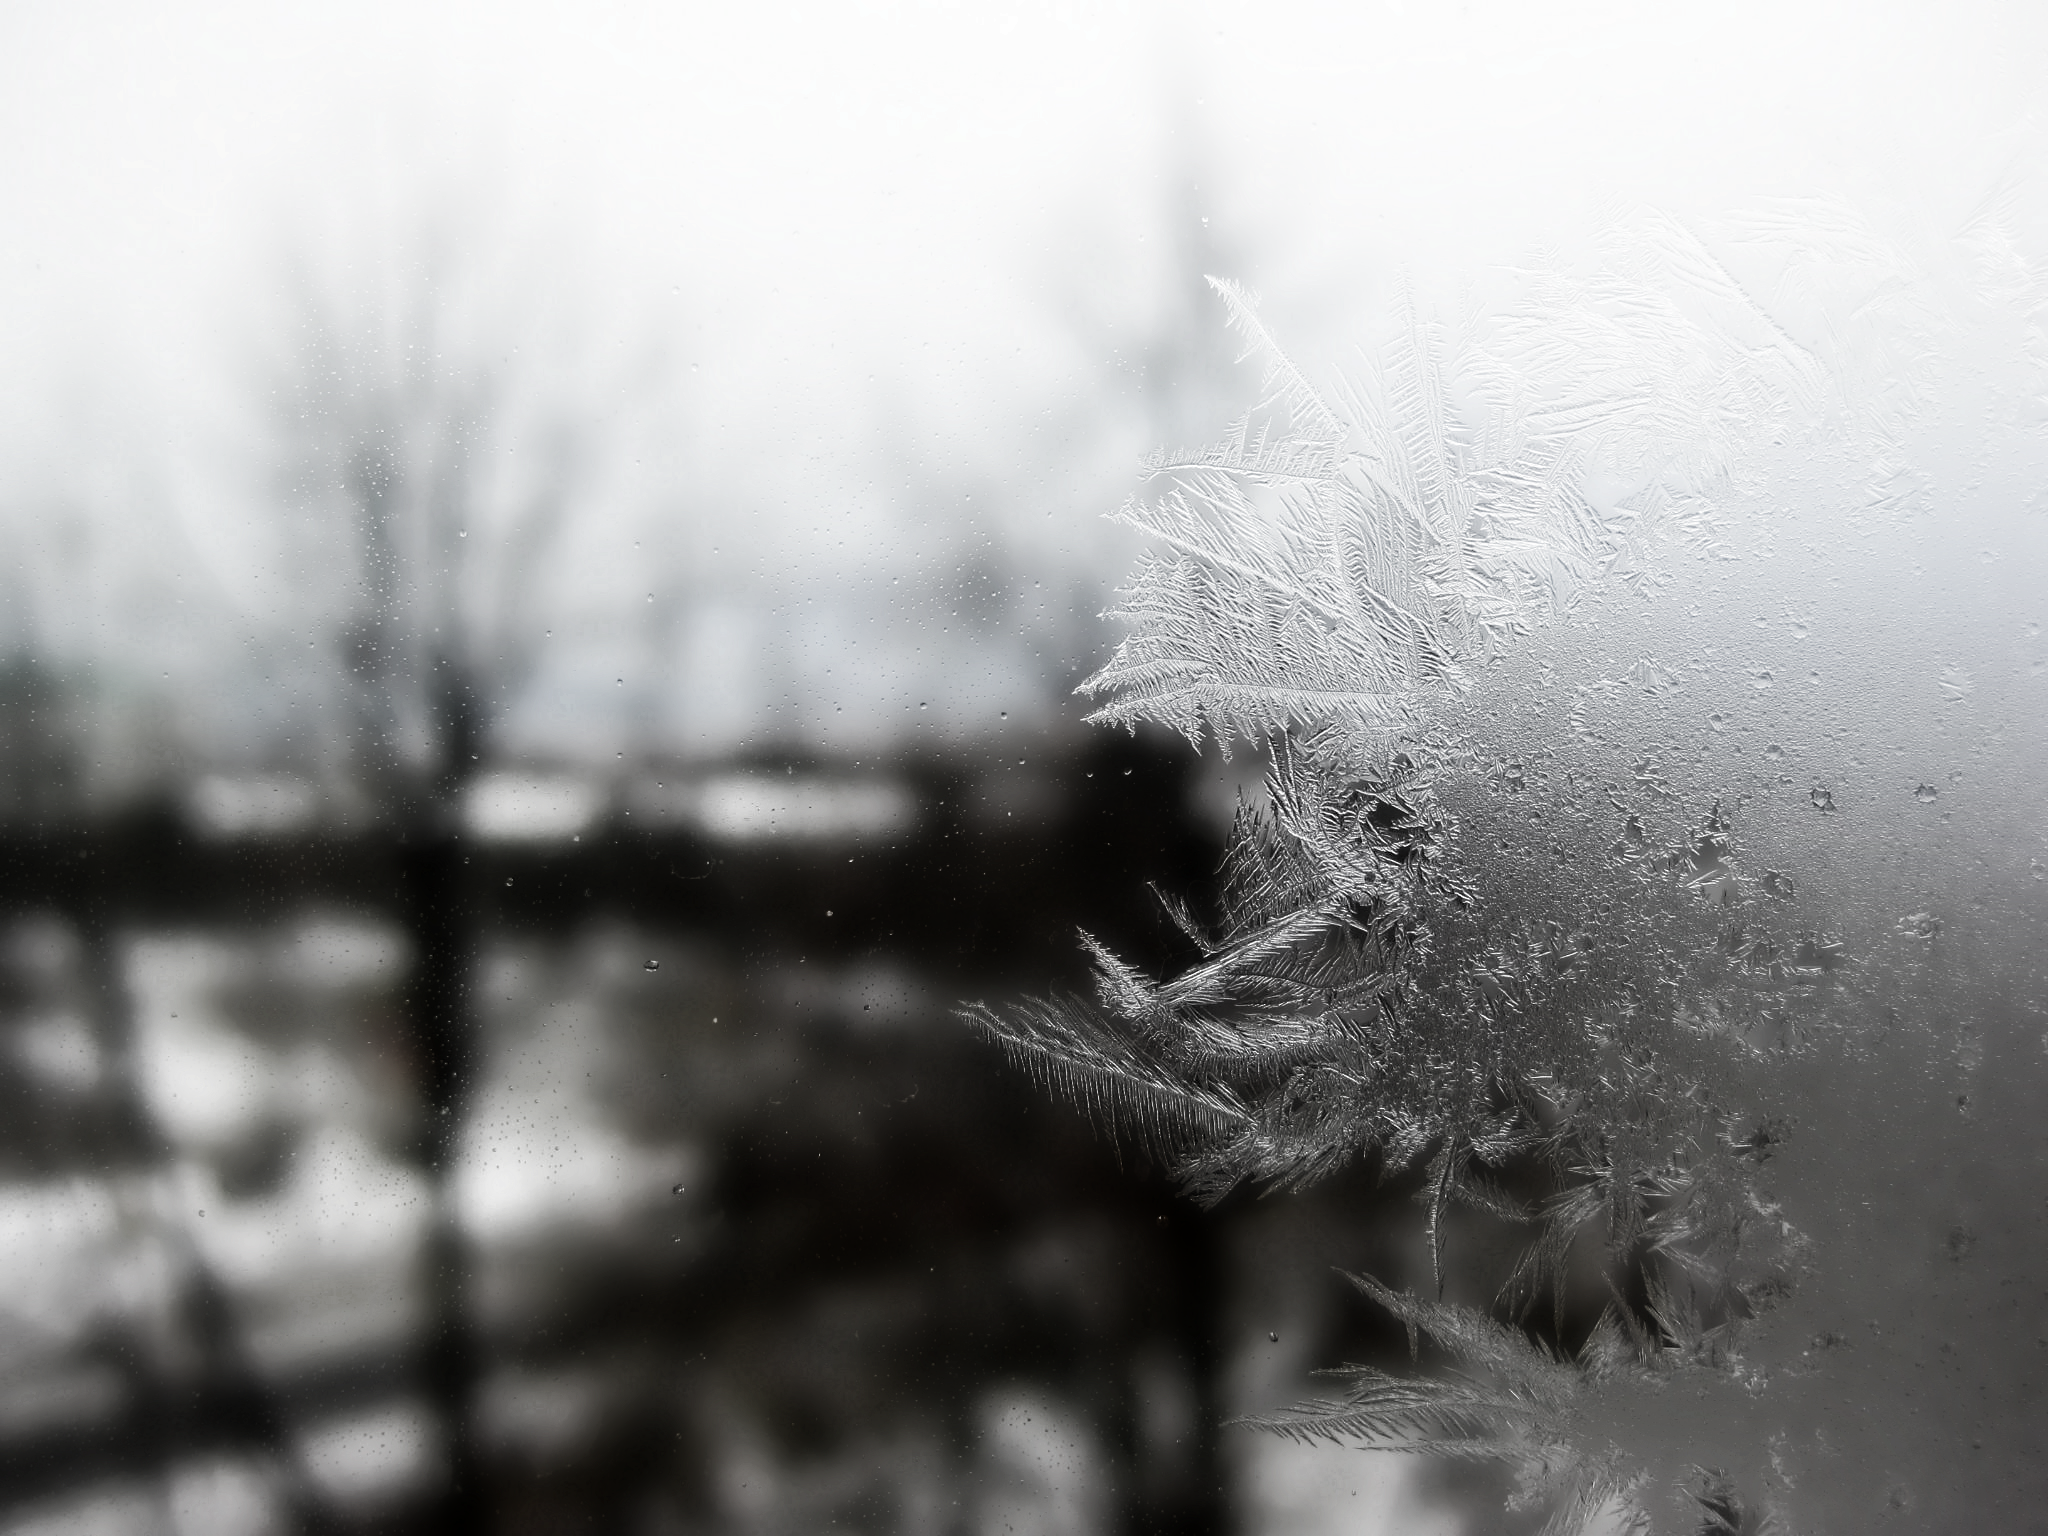 File:frosted Window.png